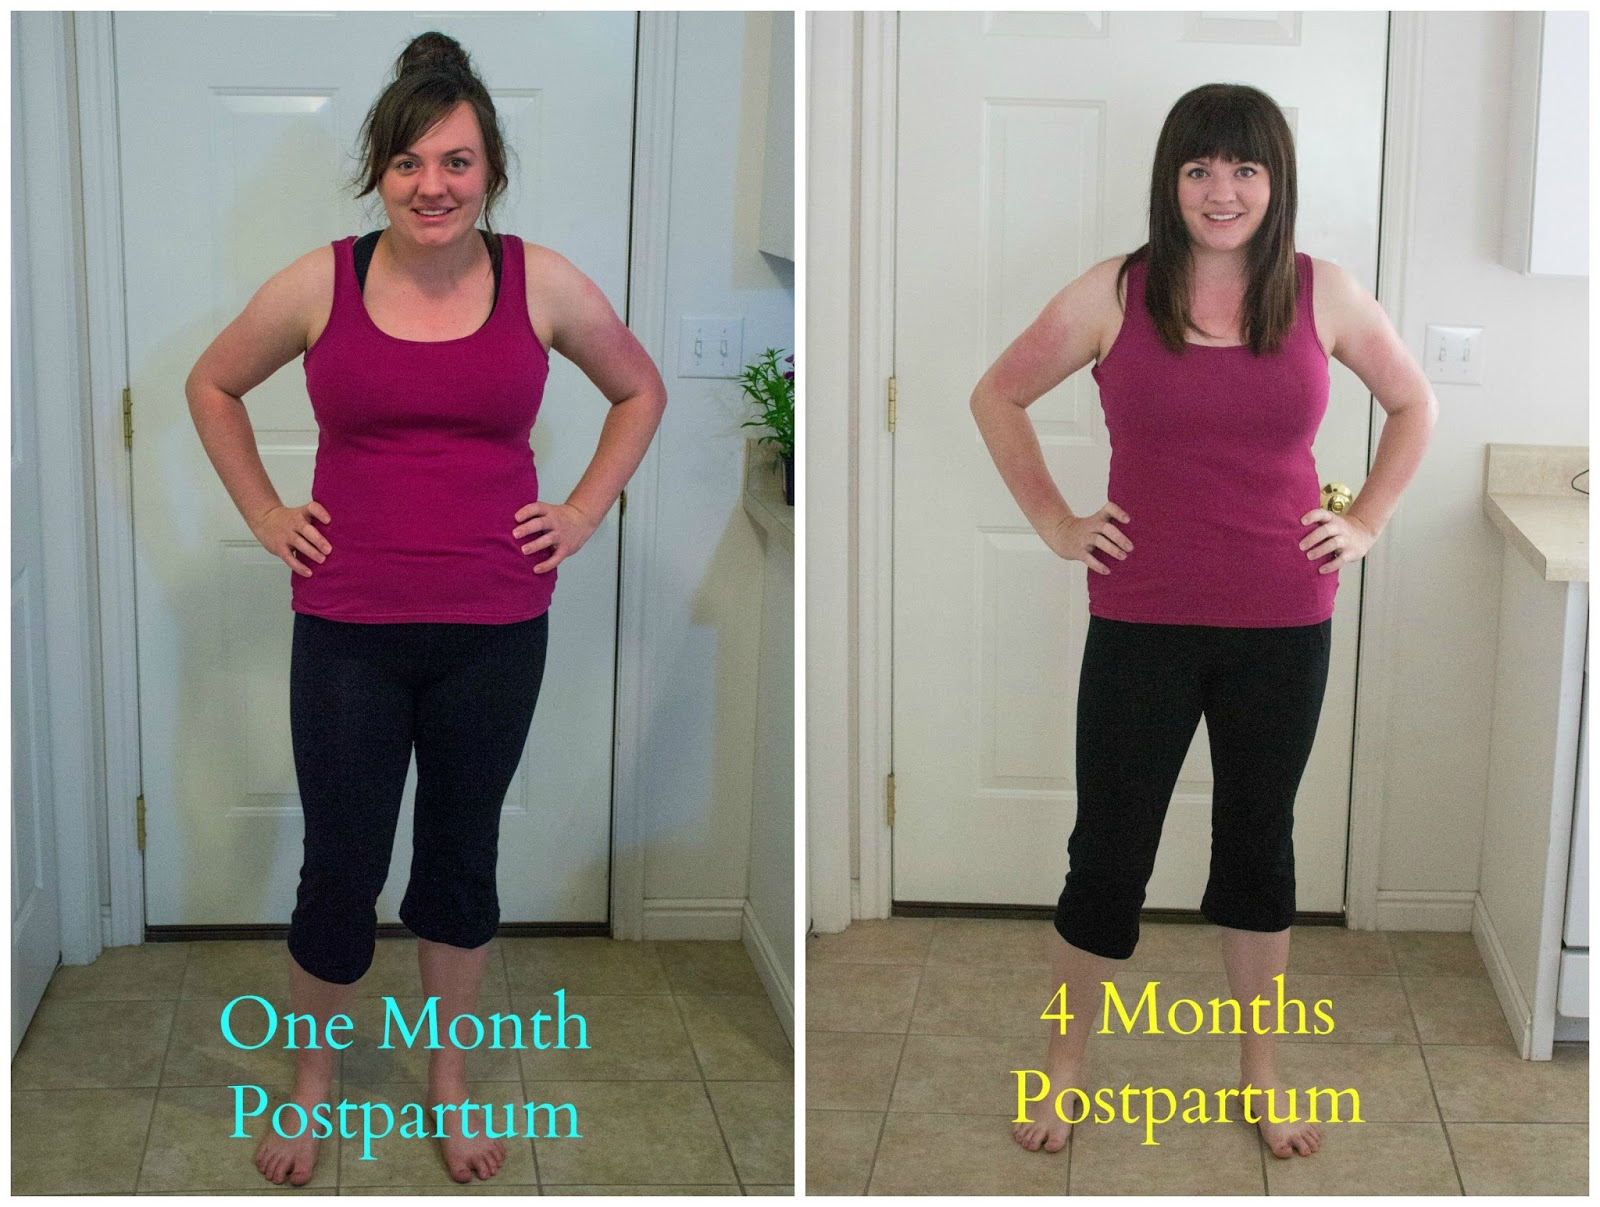 Body After Baby: 4 Months Postpartum